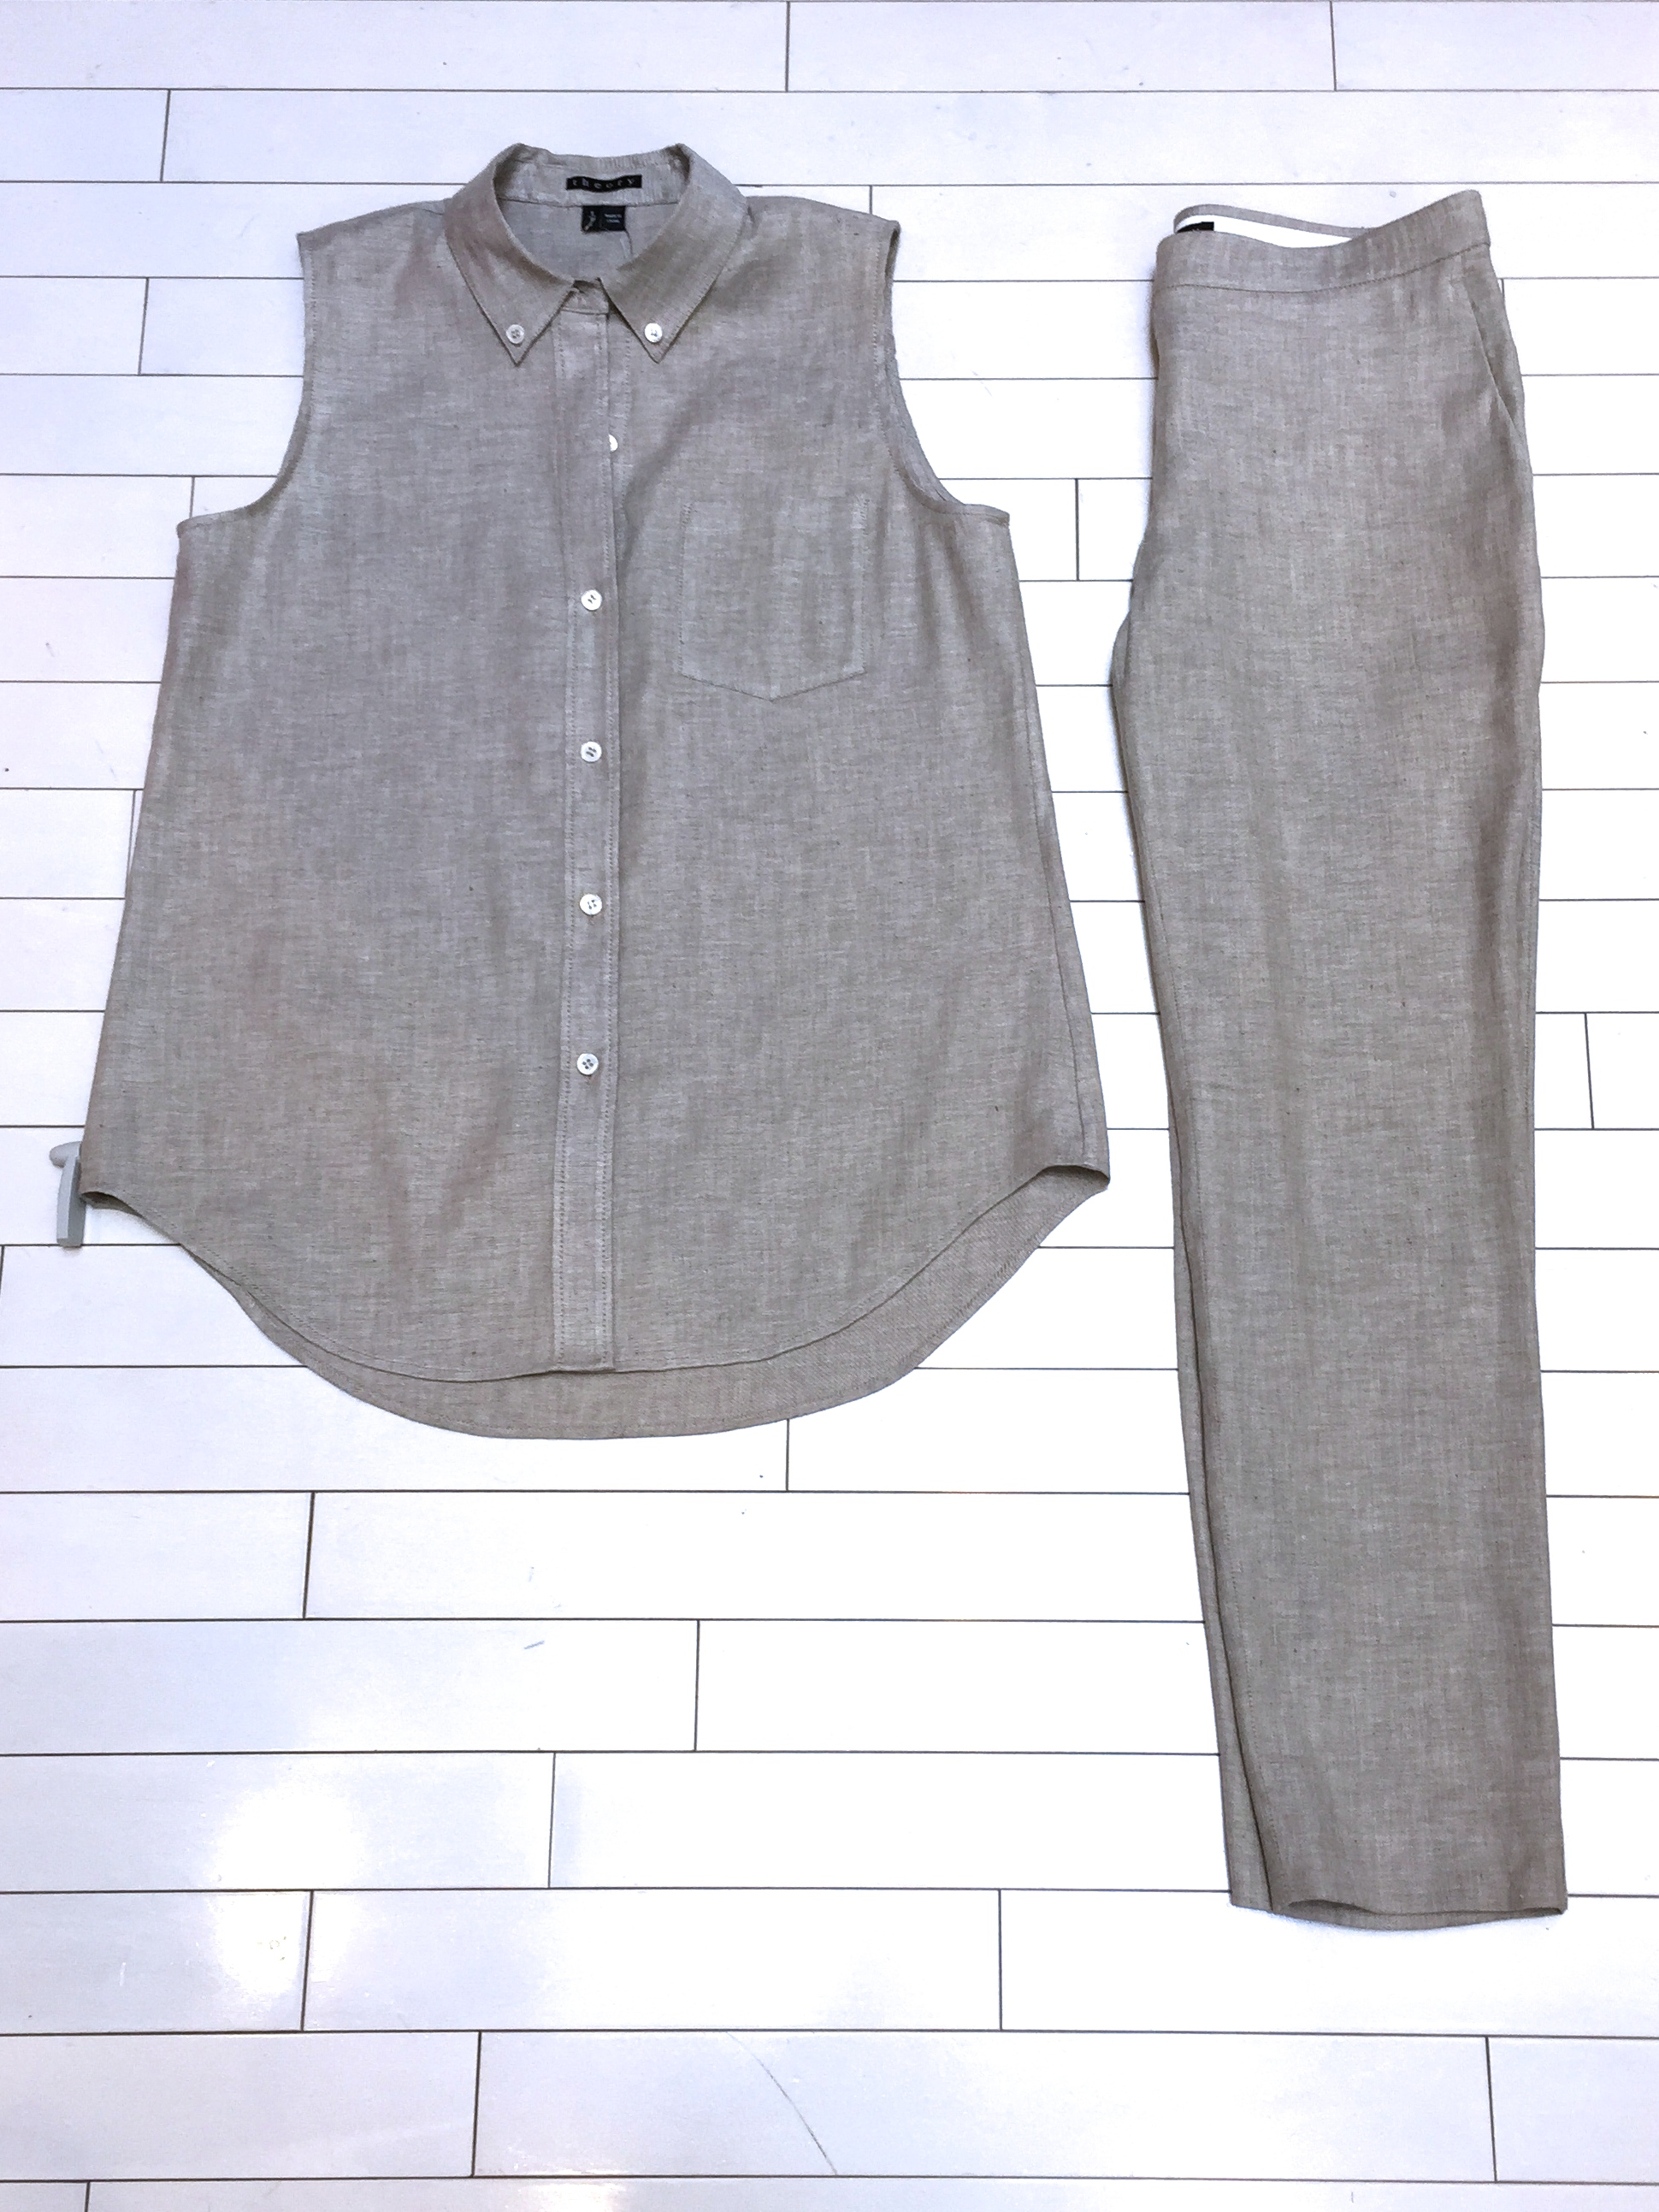 Theory Yarine Shirt and Thaniel Pant